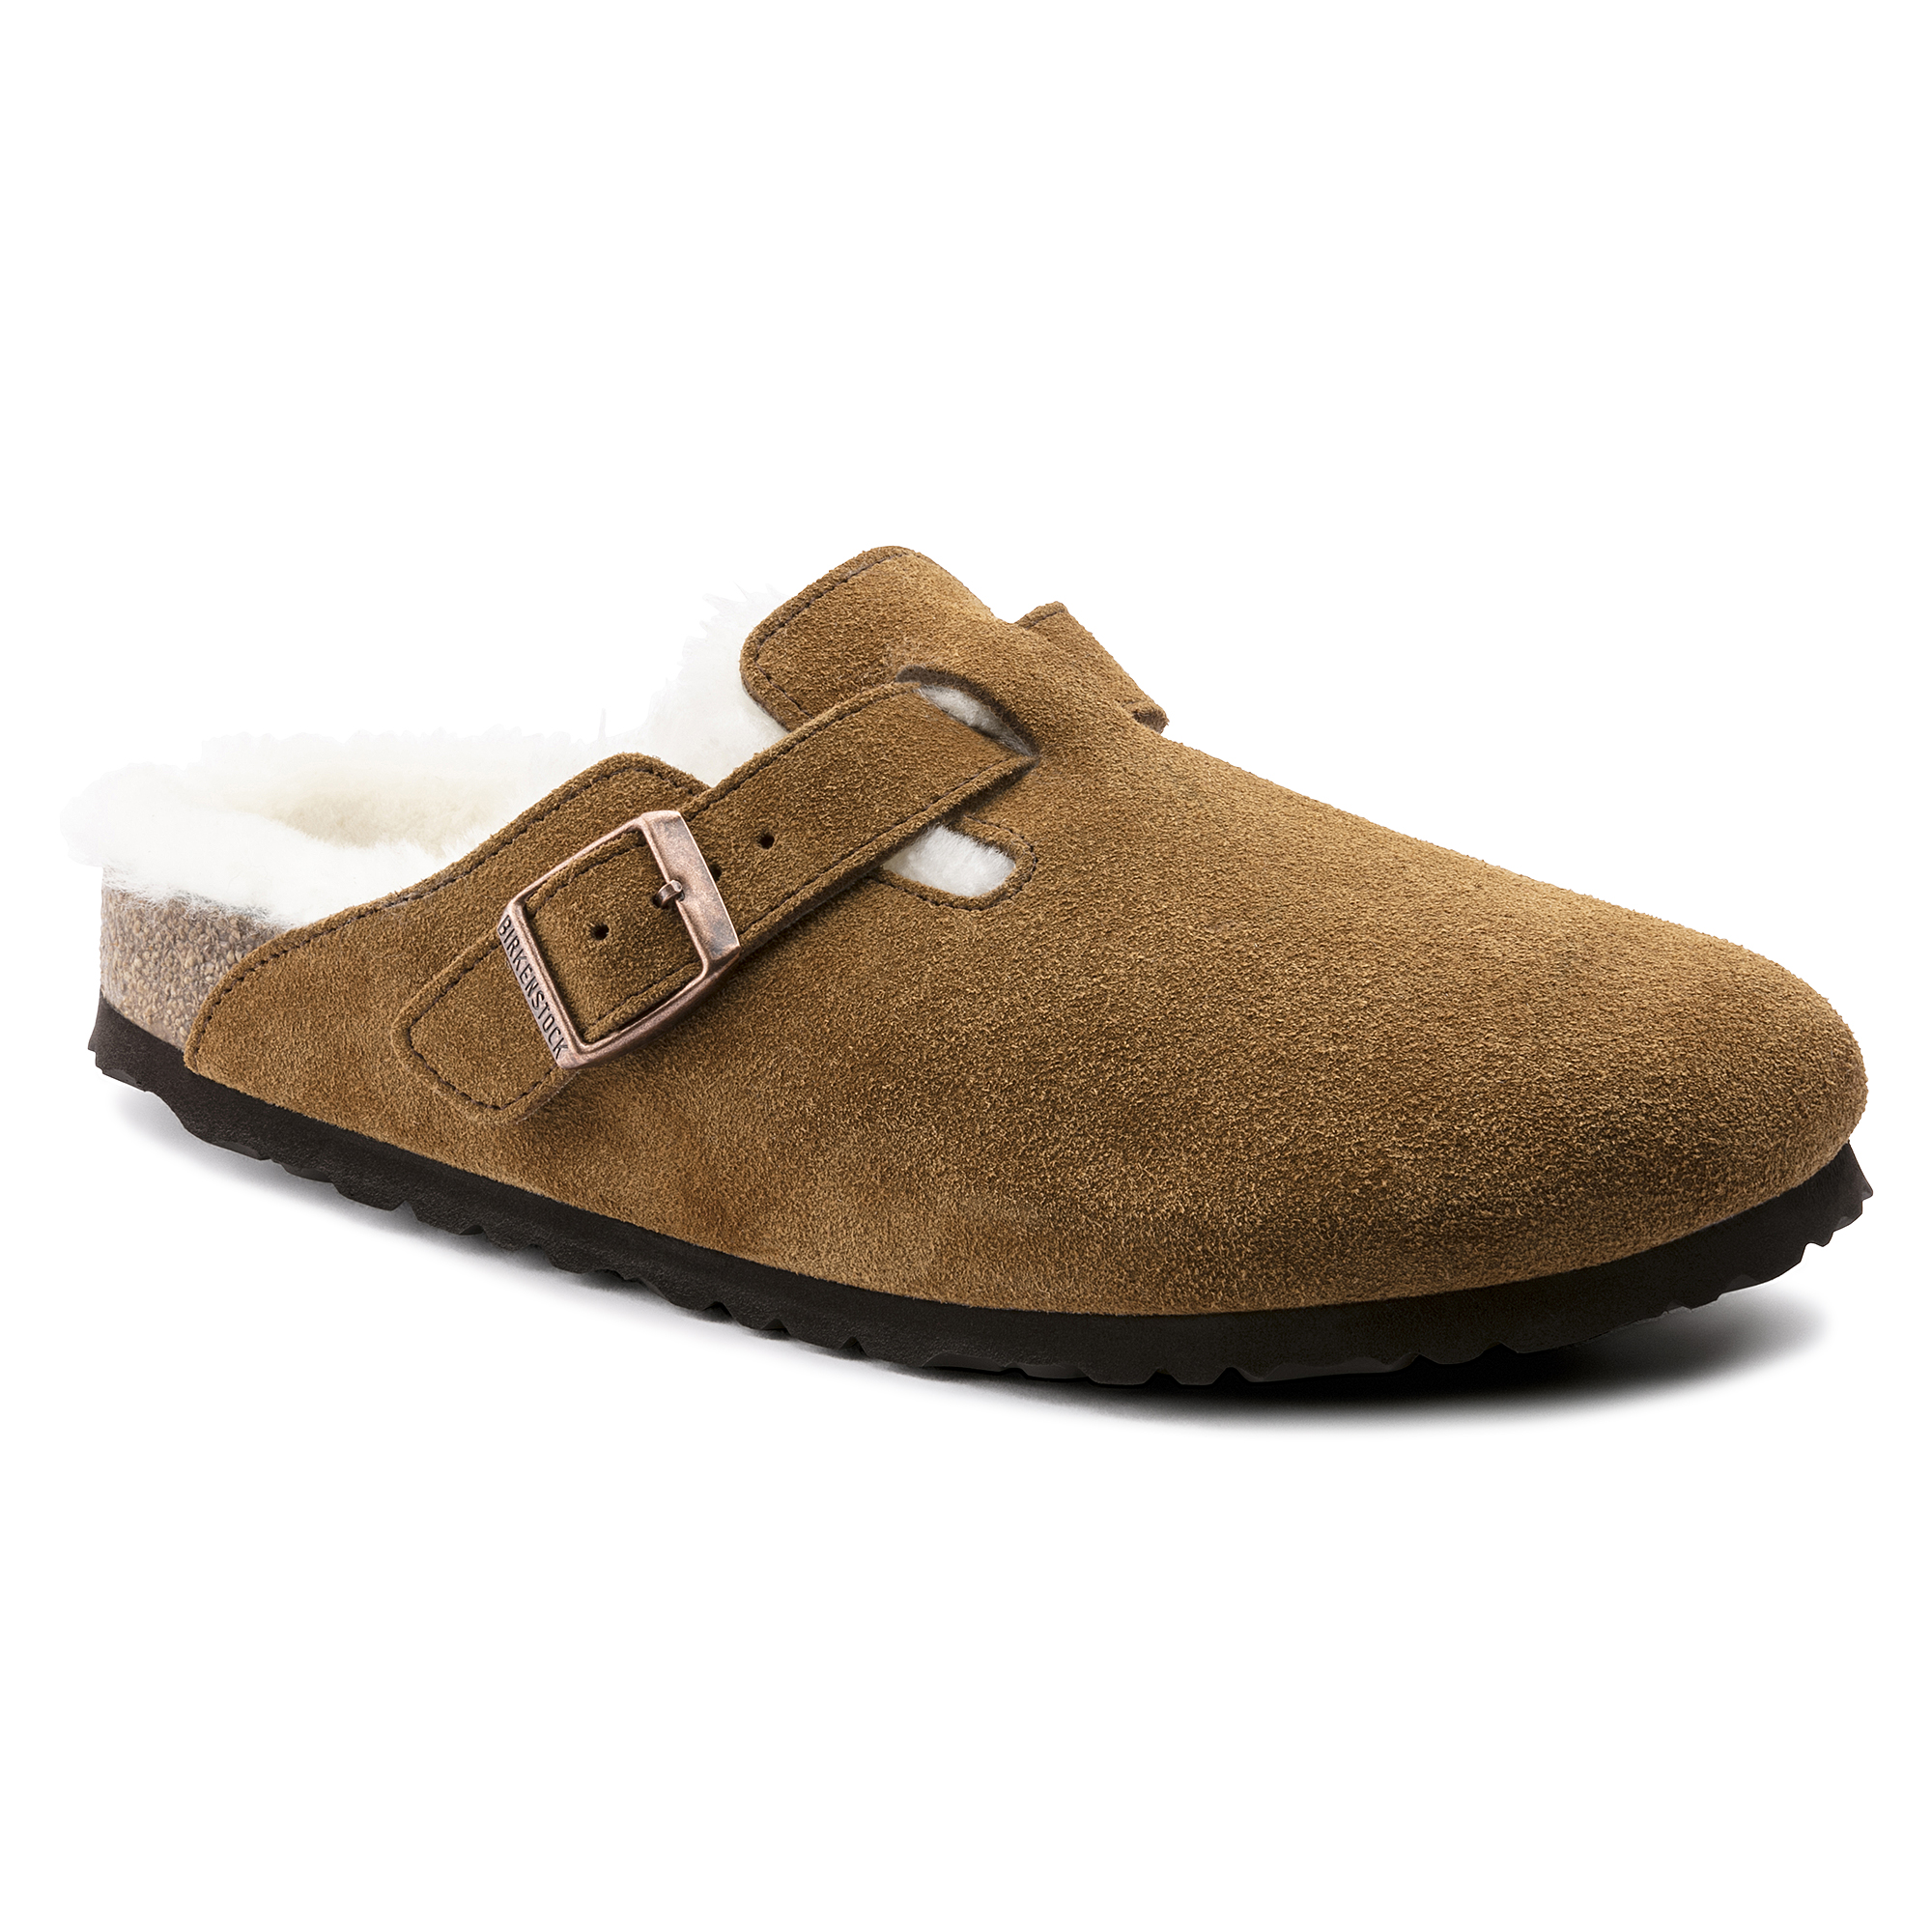 06cd2eb7584d Boston Suede Leather Mink